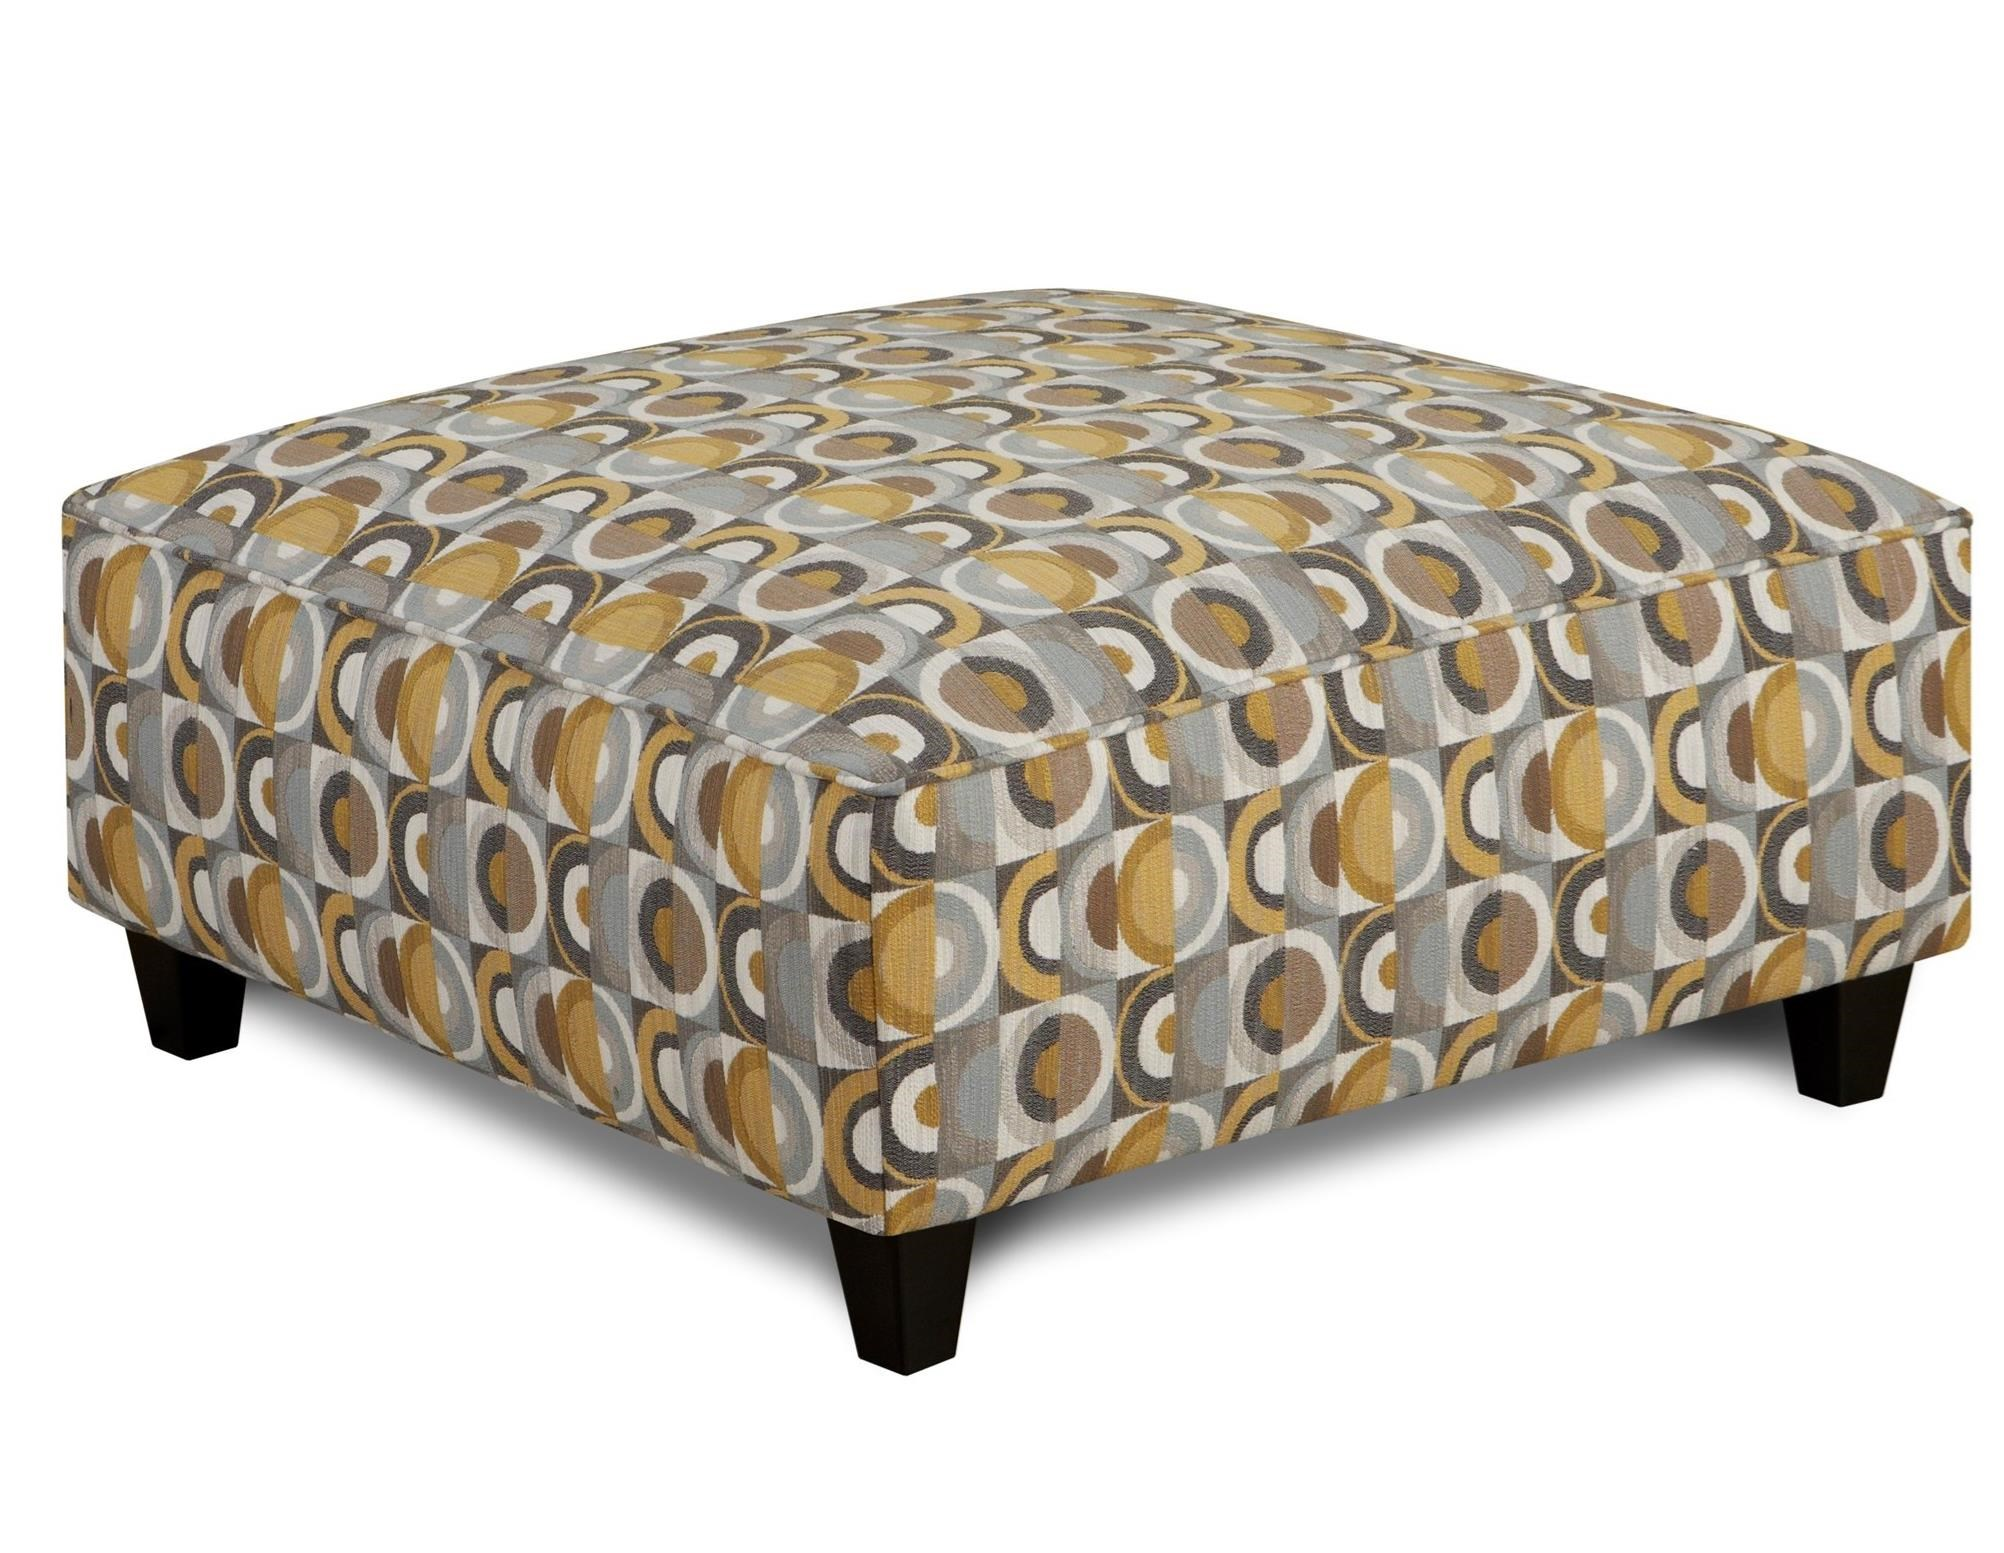 109 Square Ottoman by Fusion Furniture at Wilcox Furniture